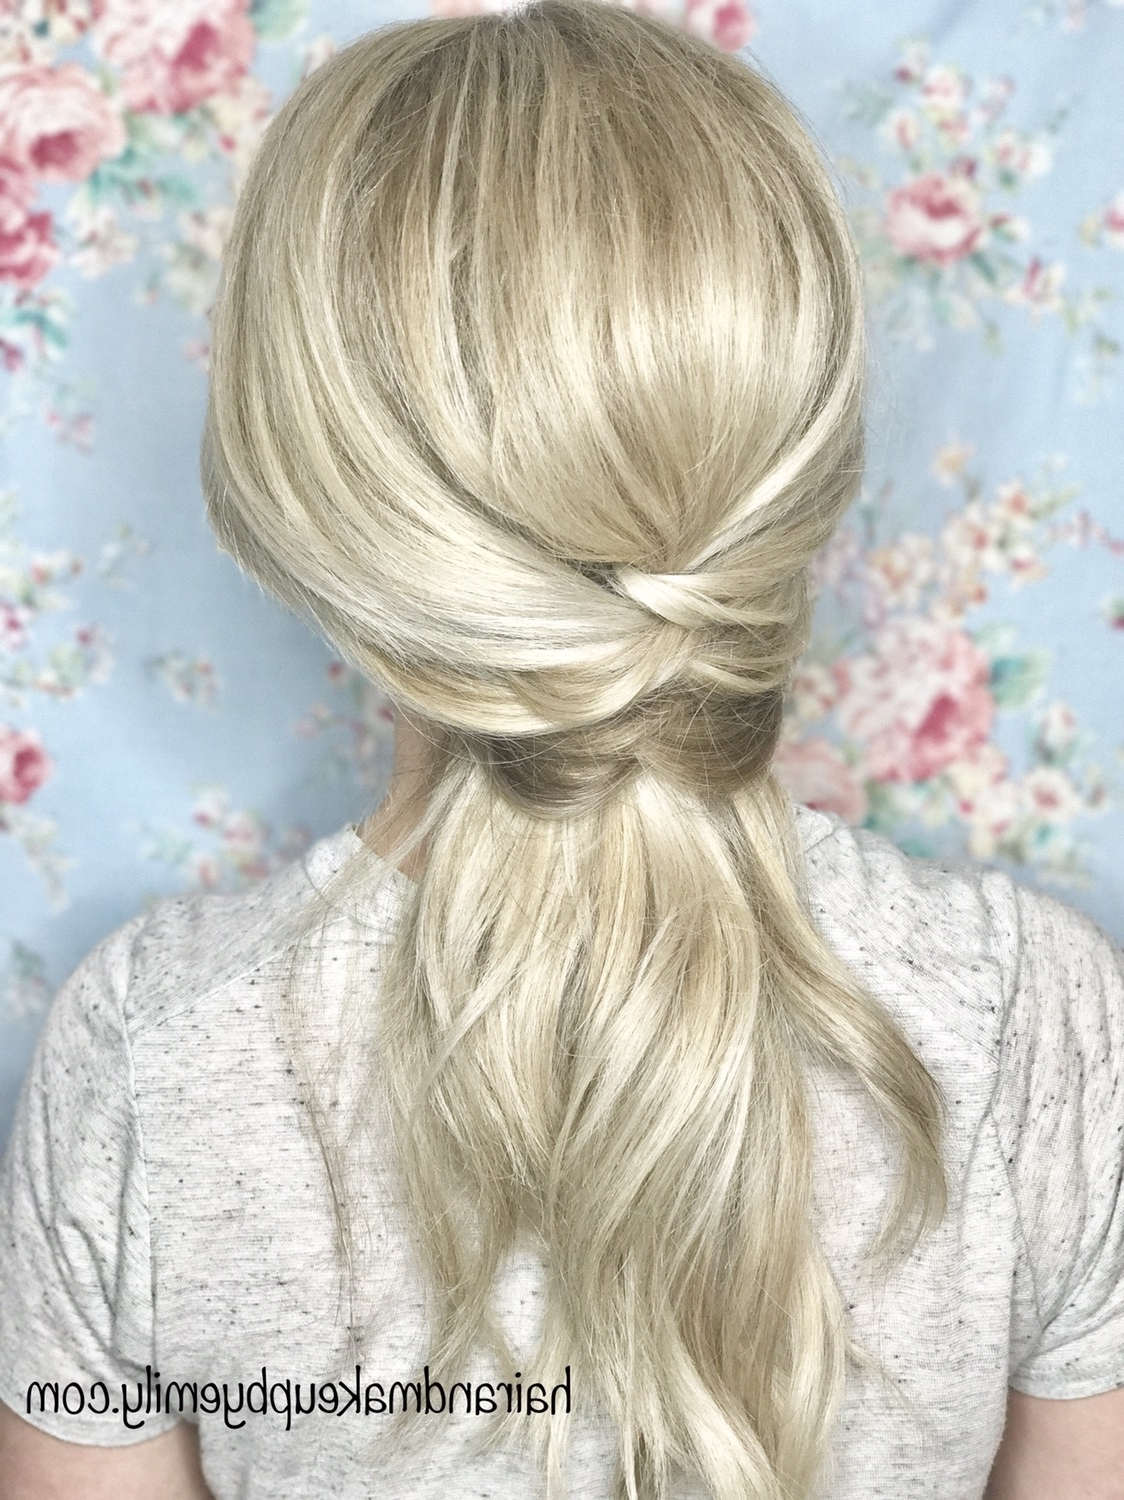 Criss Cross Ponytail – Emily Holland Pertaining To Famous Criss Cross Side Ponytails (View 7 of 20)